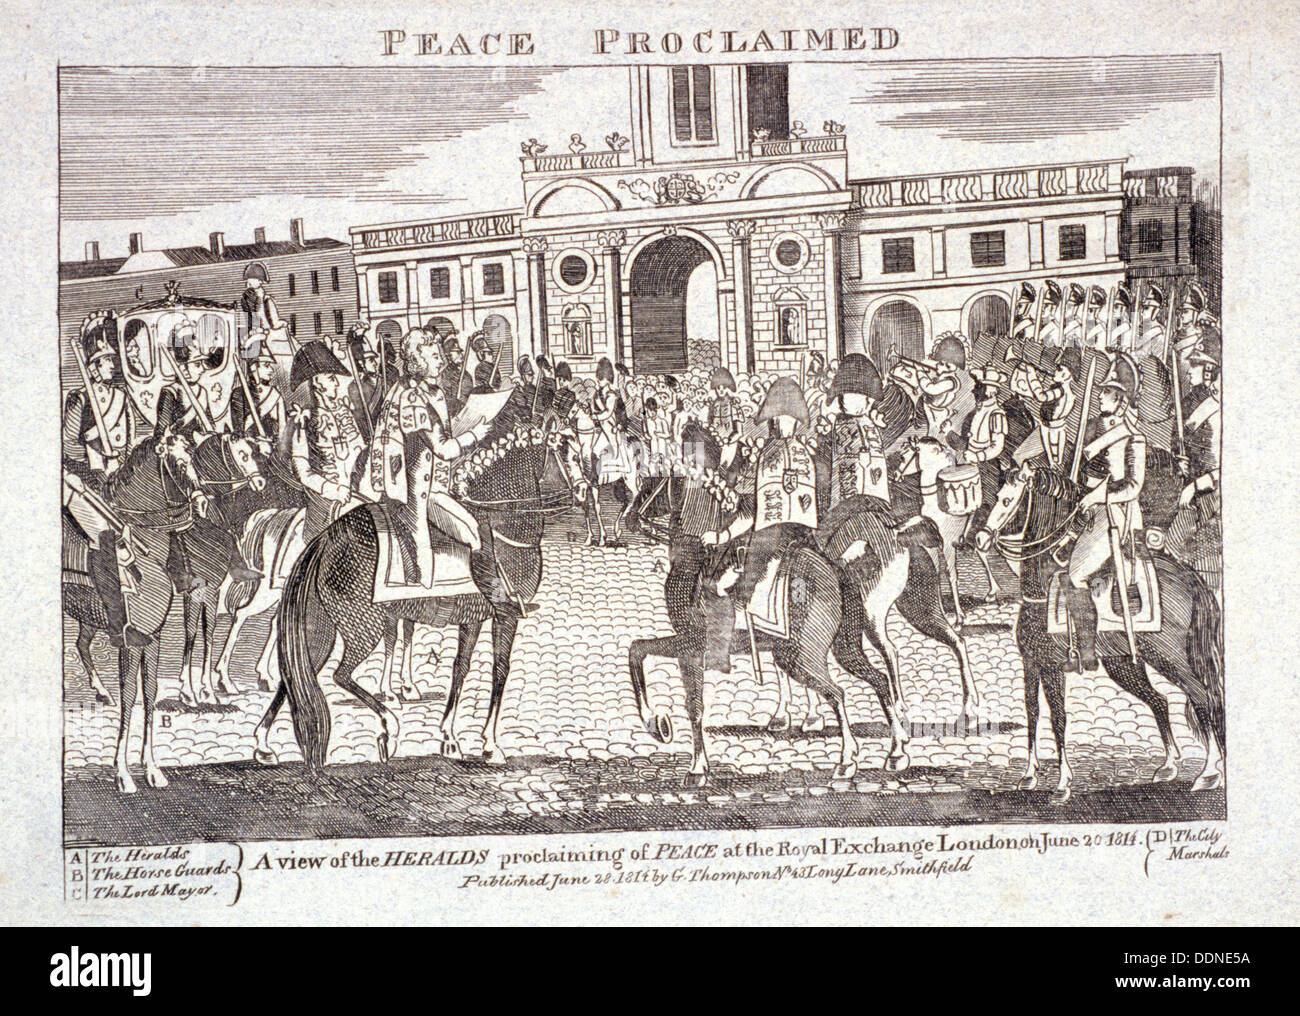 Heralds reading proclamation of peace,  Royal Exchange, London, June 28th 1814. Artist: Anon - Stock Image